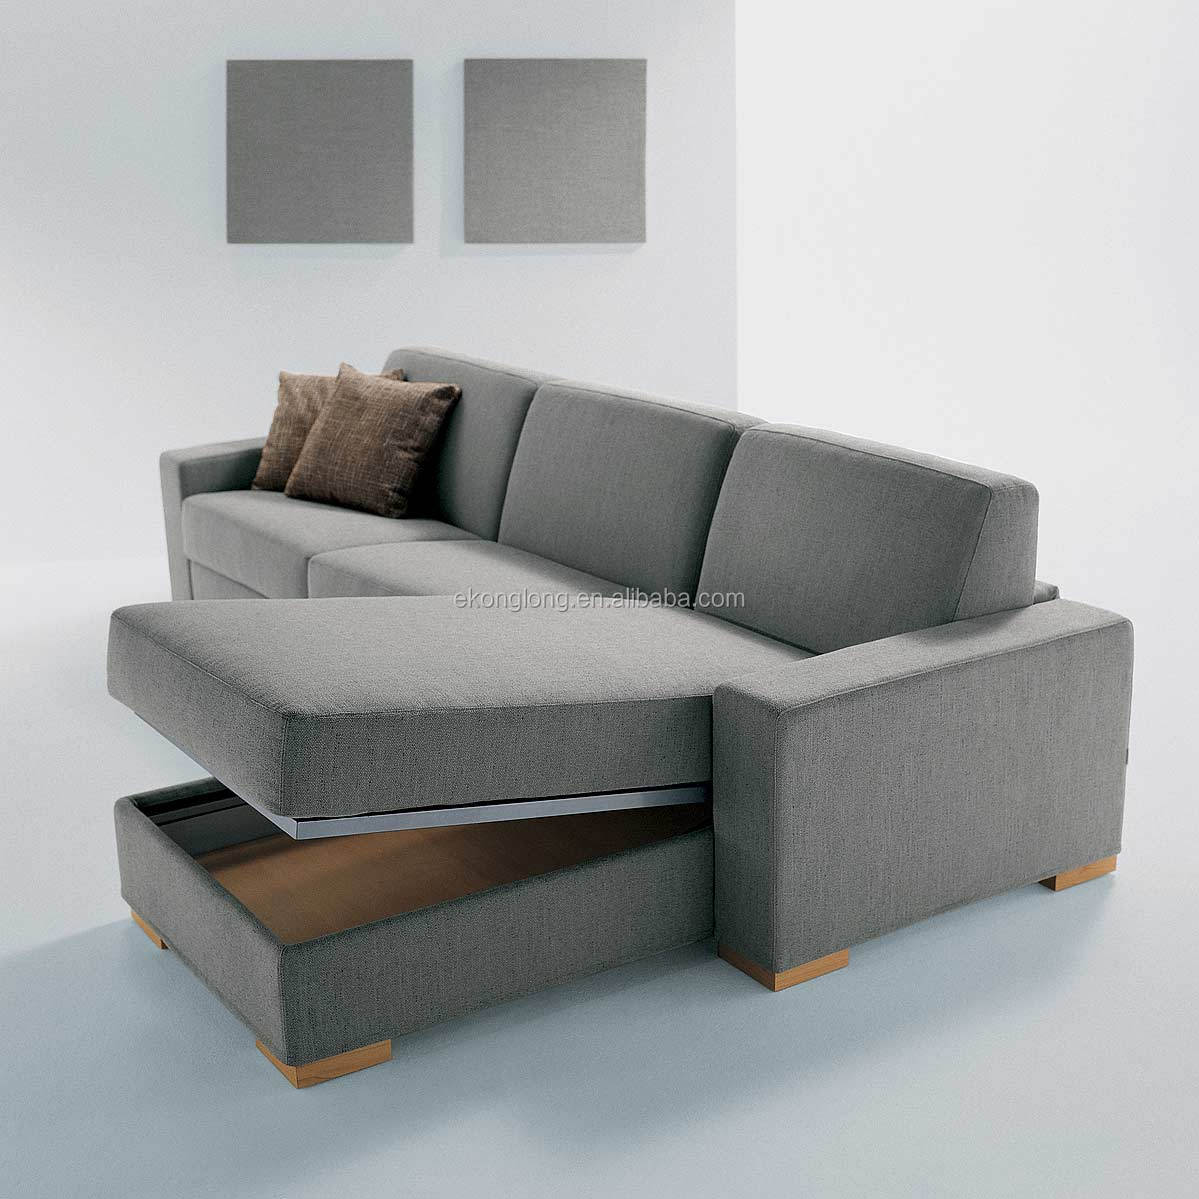 King size sofa king size sofa suppliers and manufacturers at alibaba com